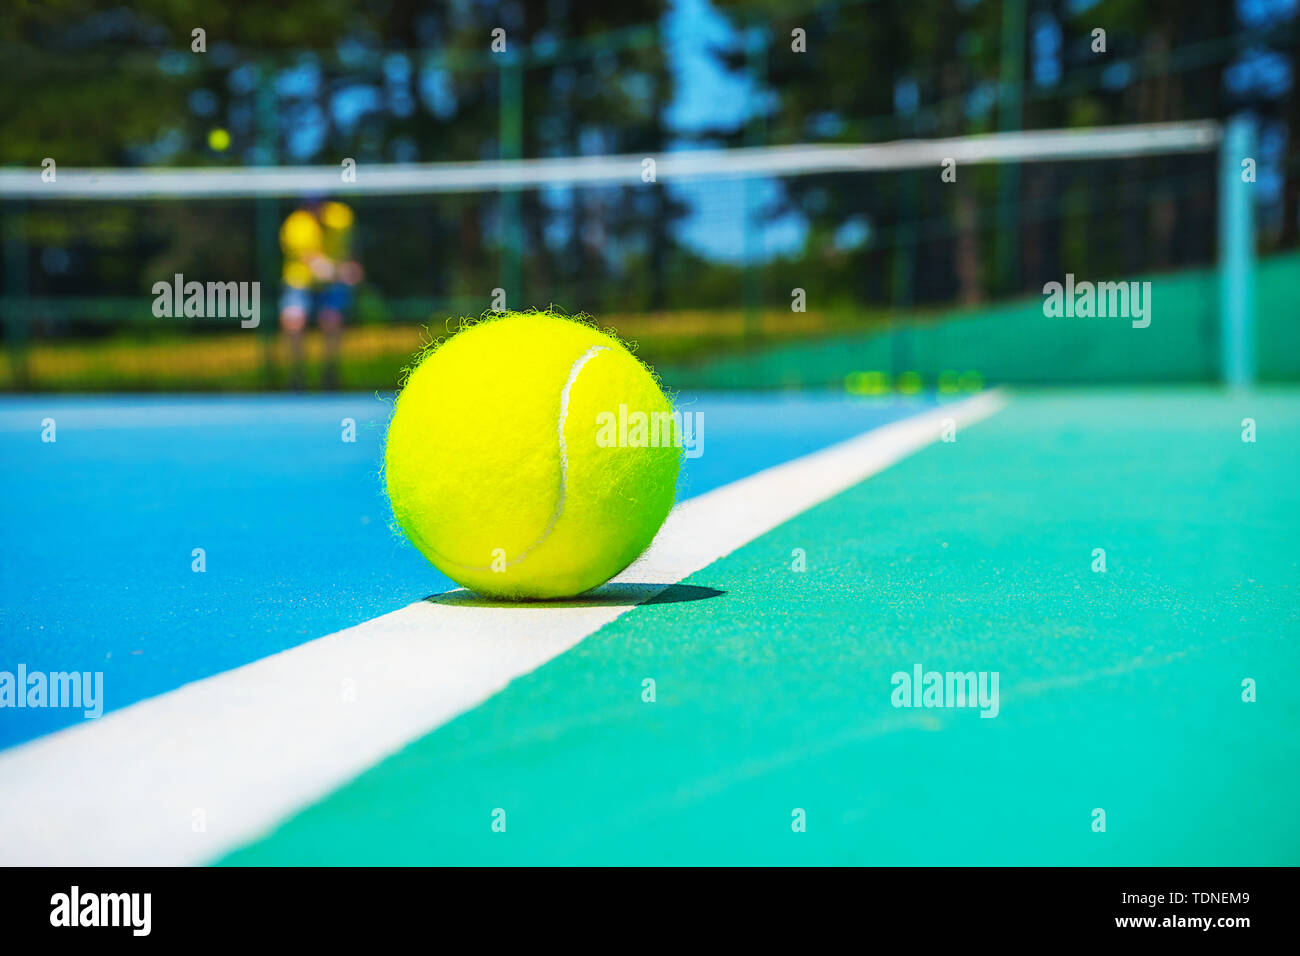 Tennis ball on white court line on hard modern blue green court with player, net, balls, trees on the background. Stock Photo